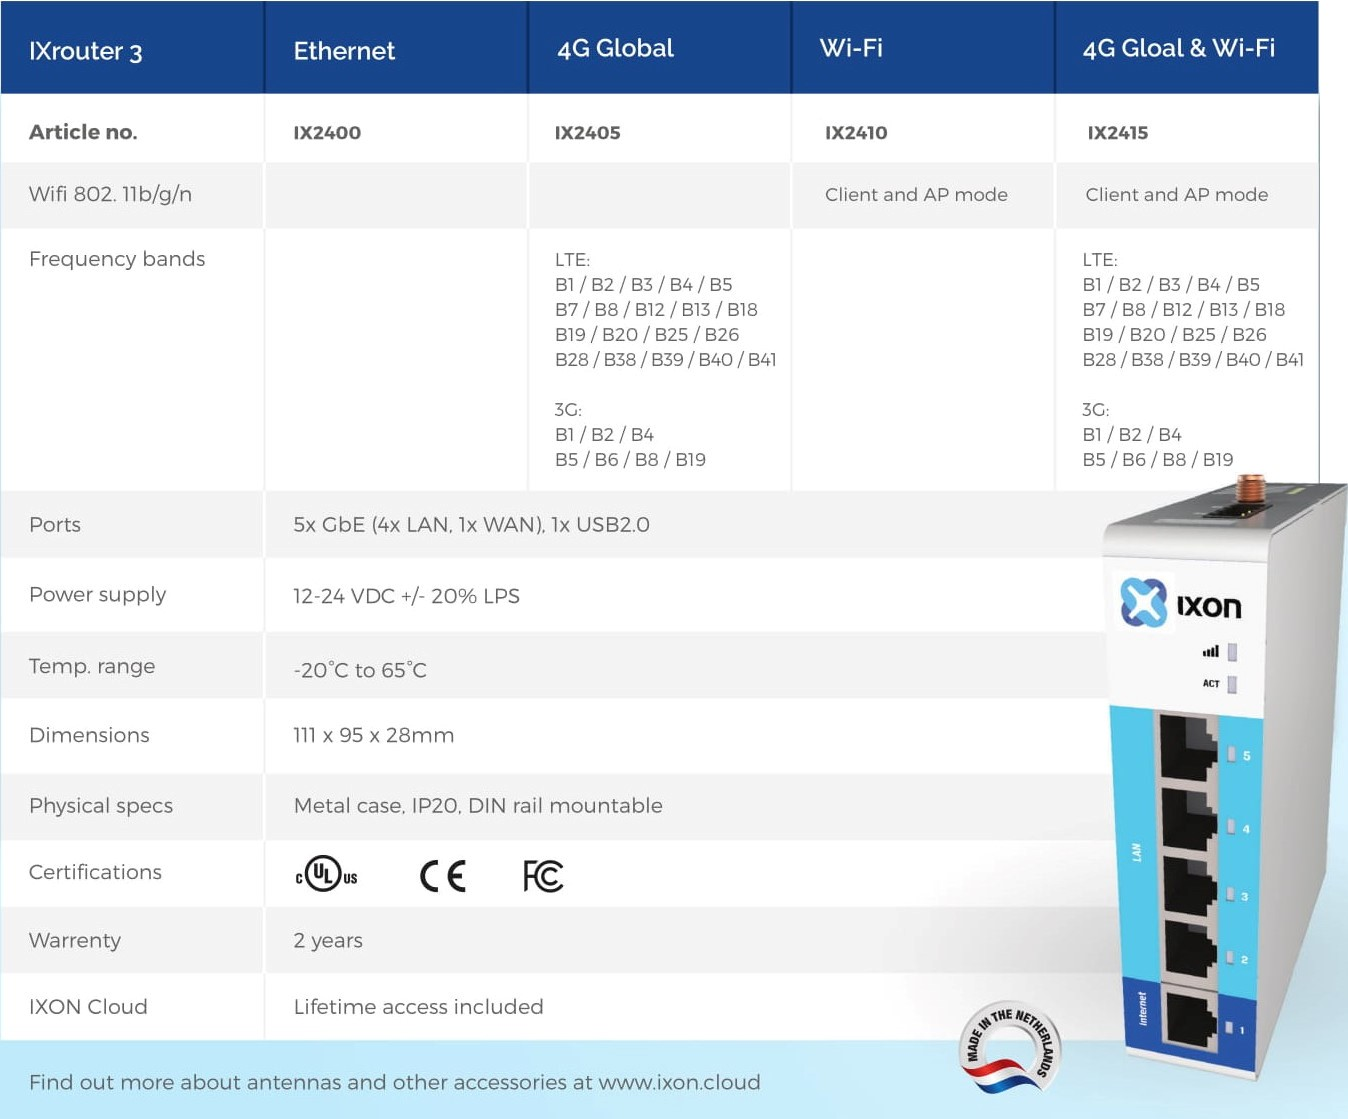 All models of the IXrouter3